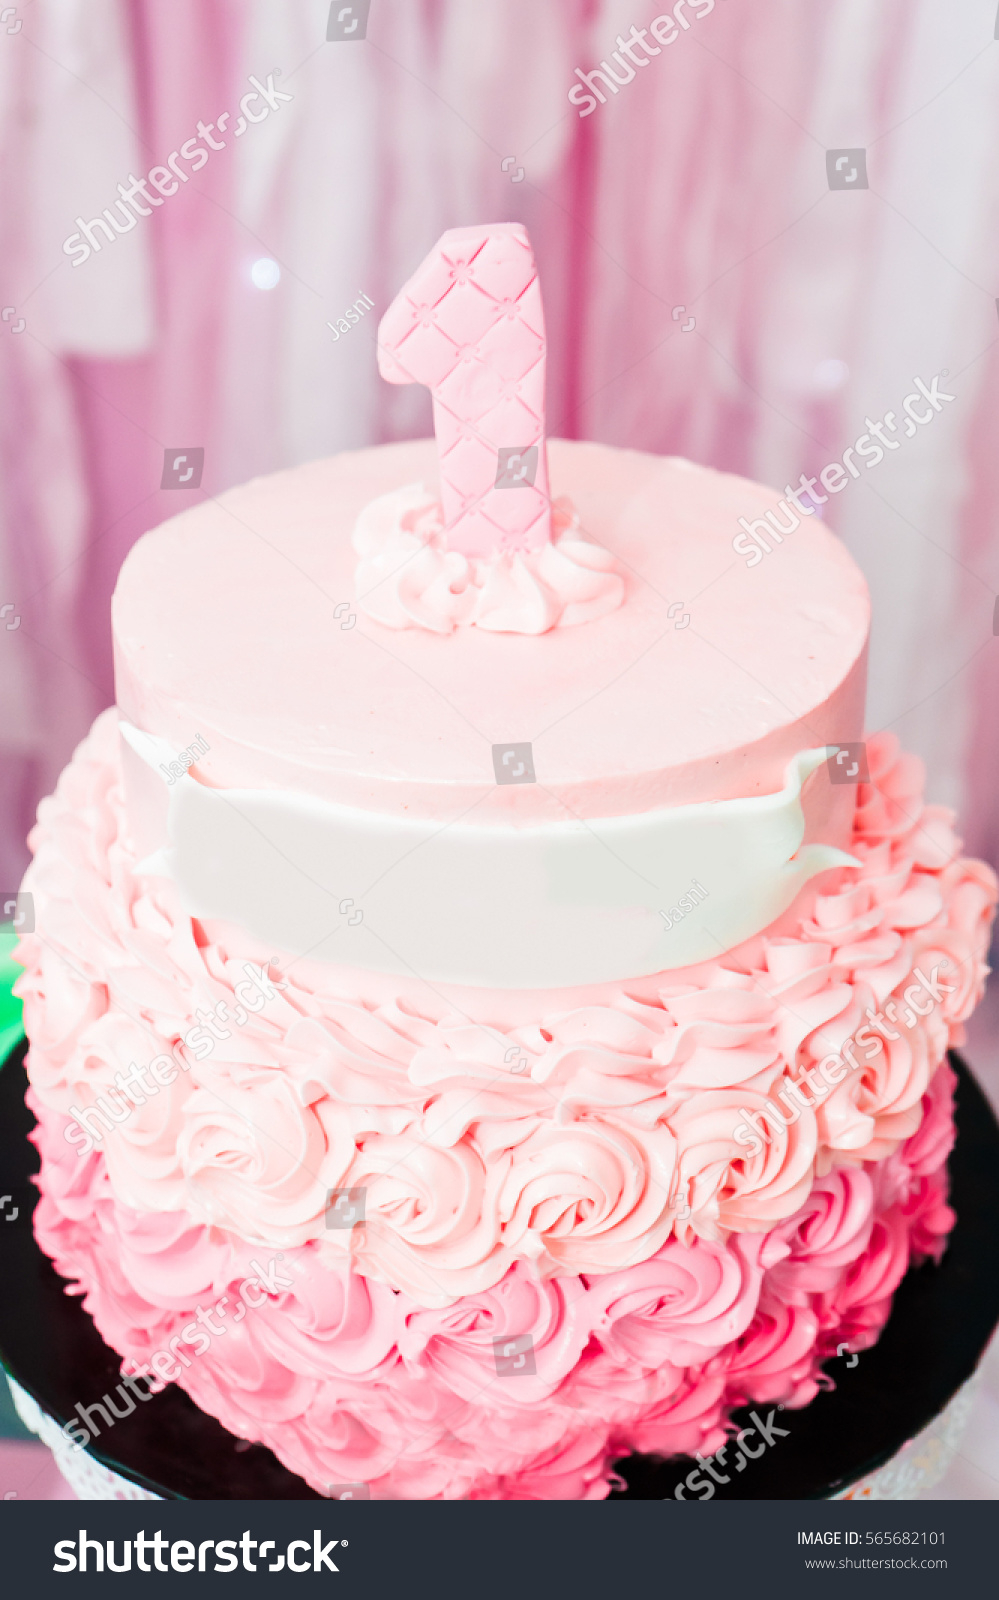 Birthday Cake For 1 Year Old Close Image Girl Stock Photo Edit Now 565682101